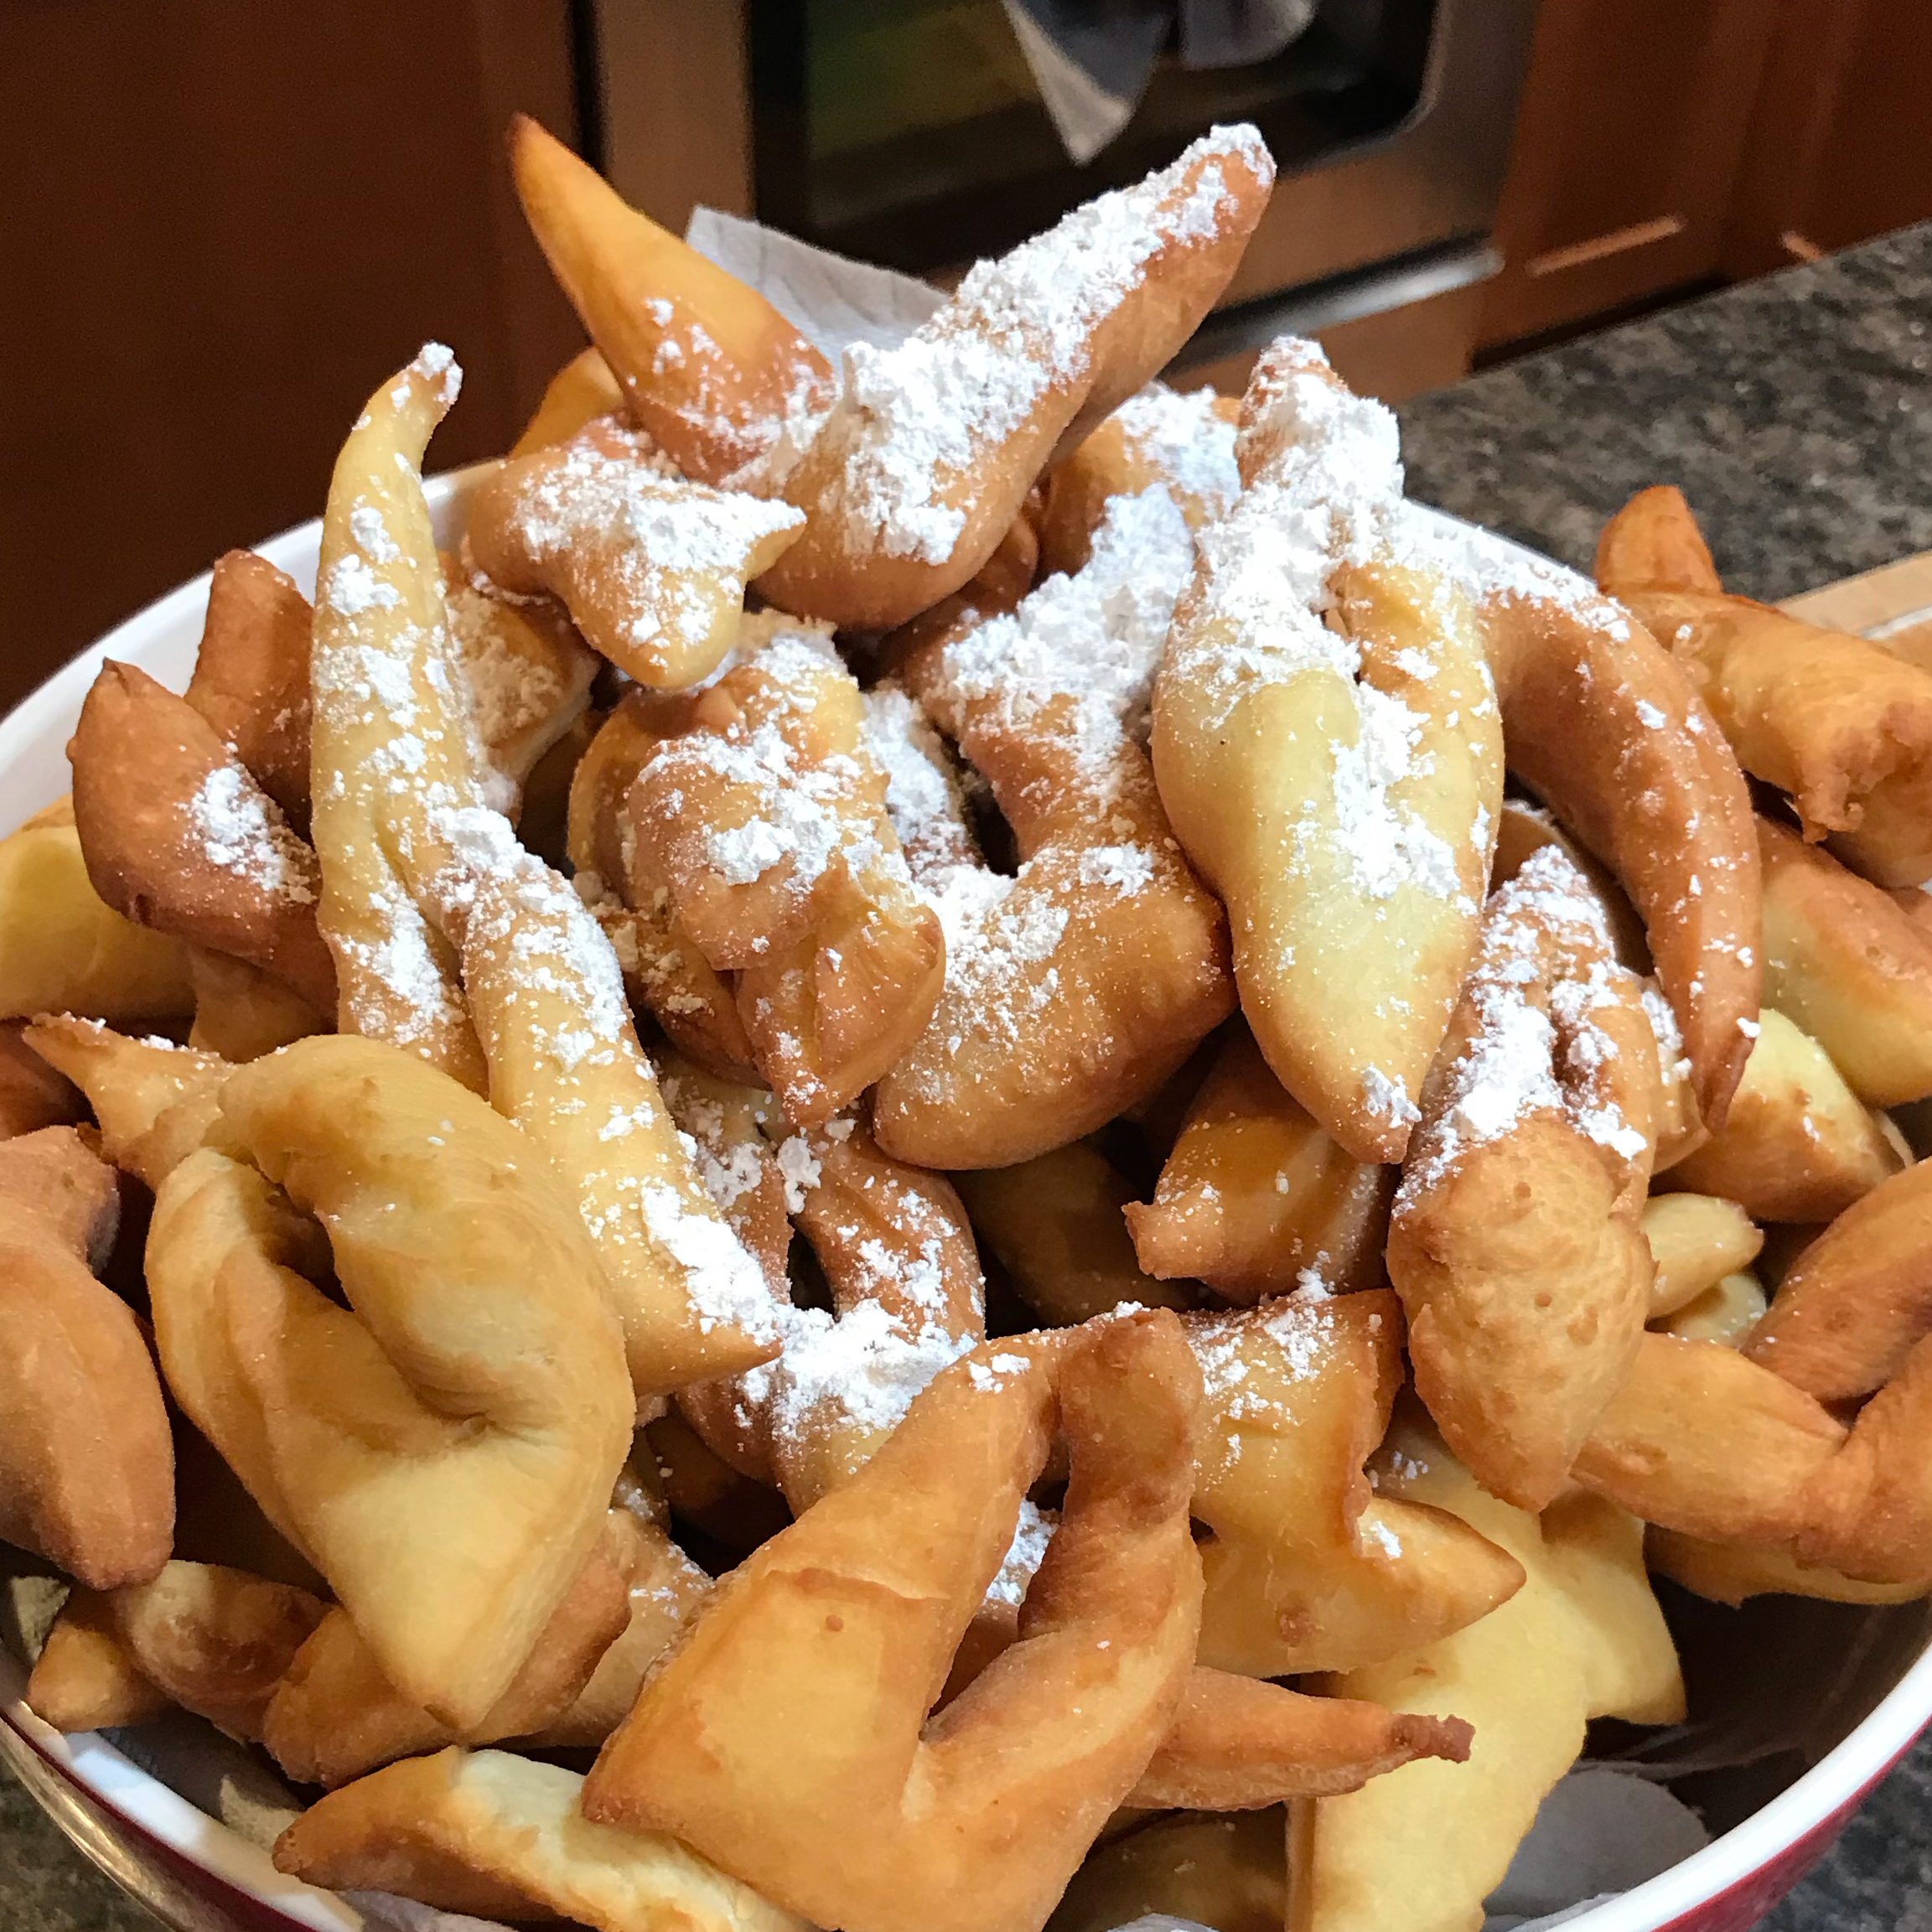 Bugnes Moelleuses (French Doughnuts)